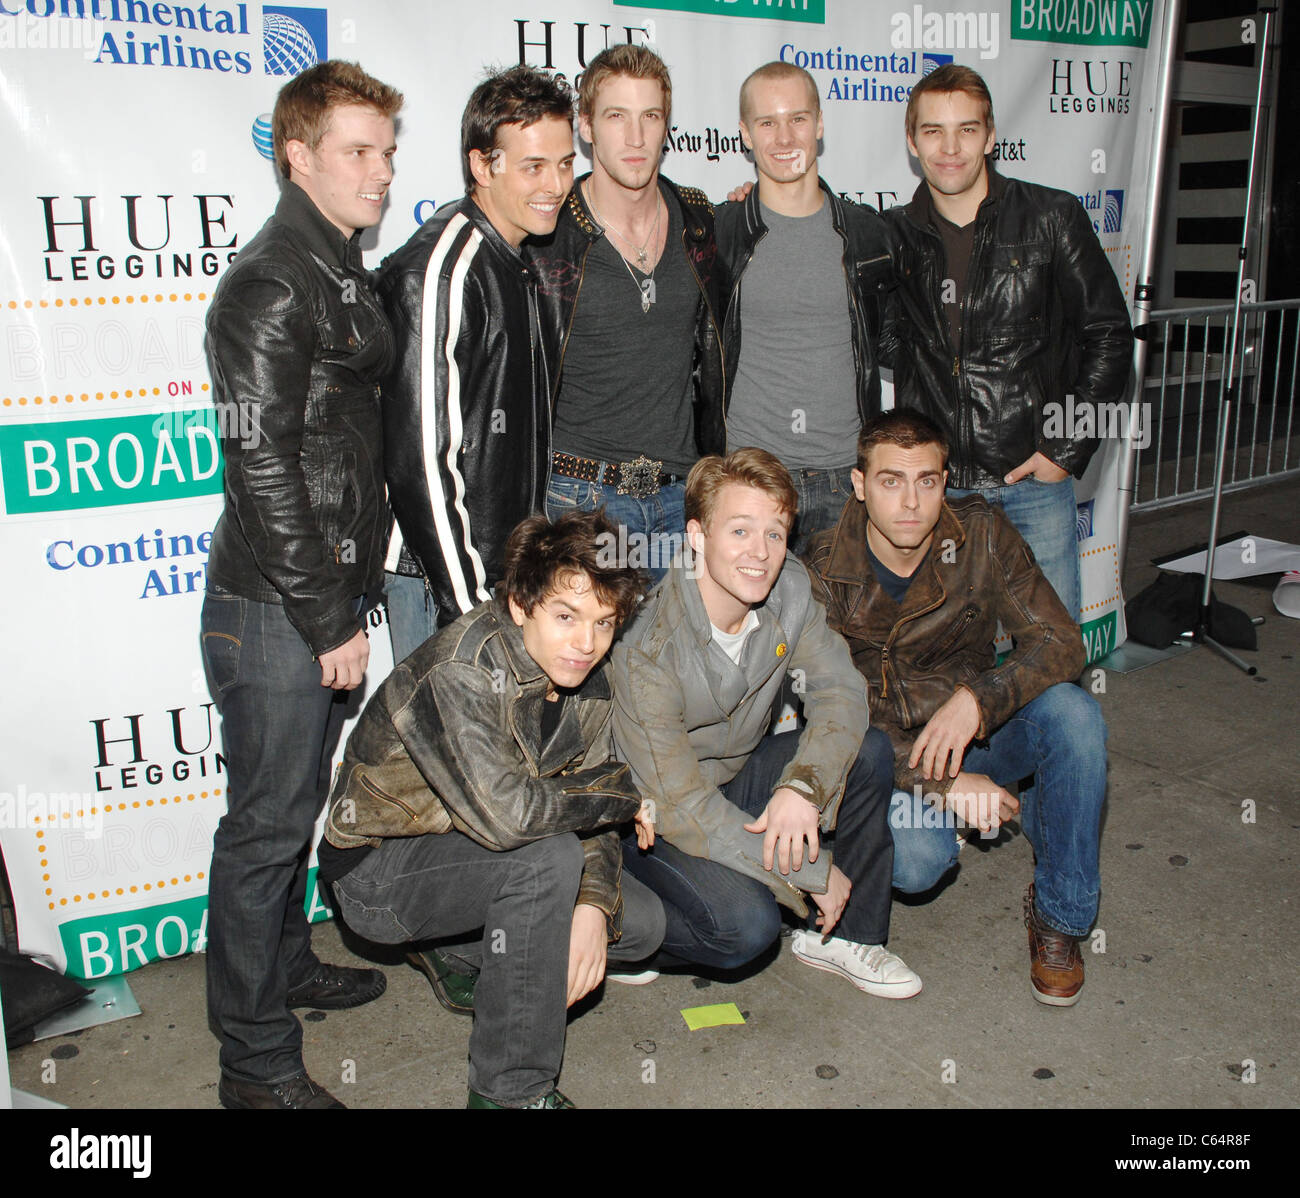 Cast members from West Side Story in attendance for Broadway on Broadway 2010 Concert Kick-Off, Times Square, New - Stock Image